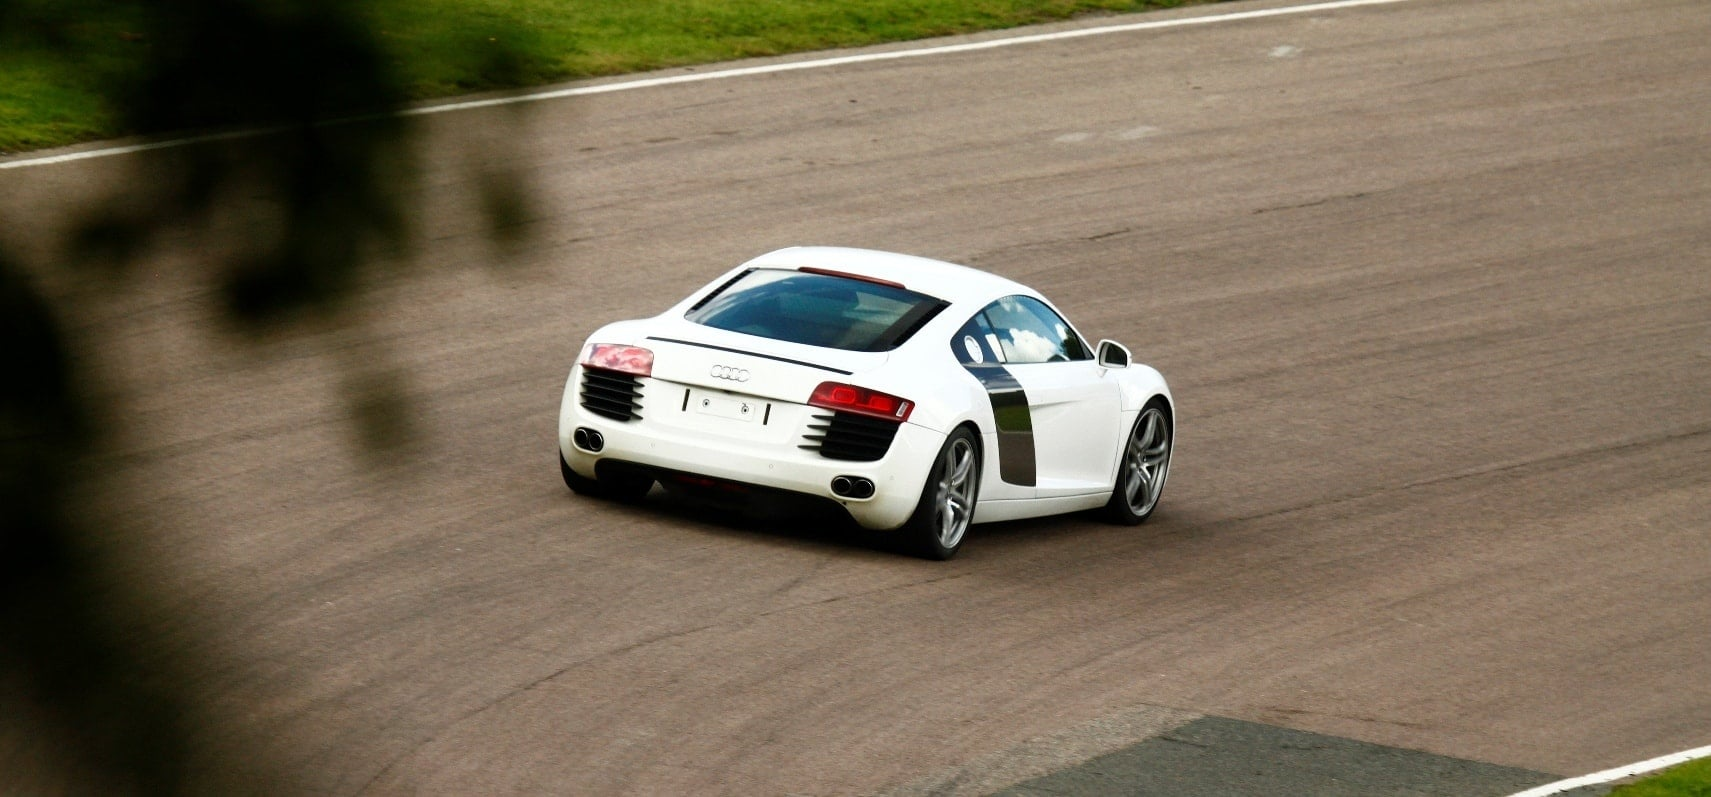 Iron Man Audi R8 6 Mile Driving Experience-4